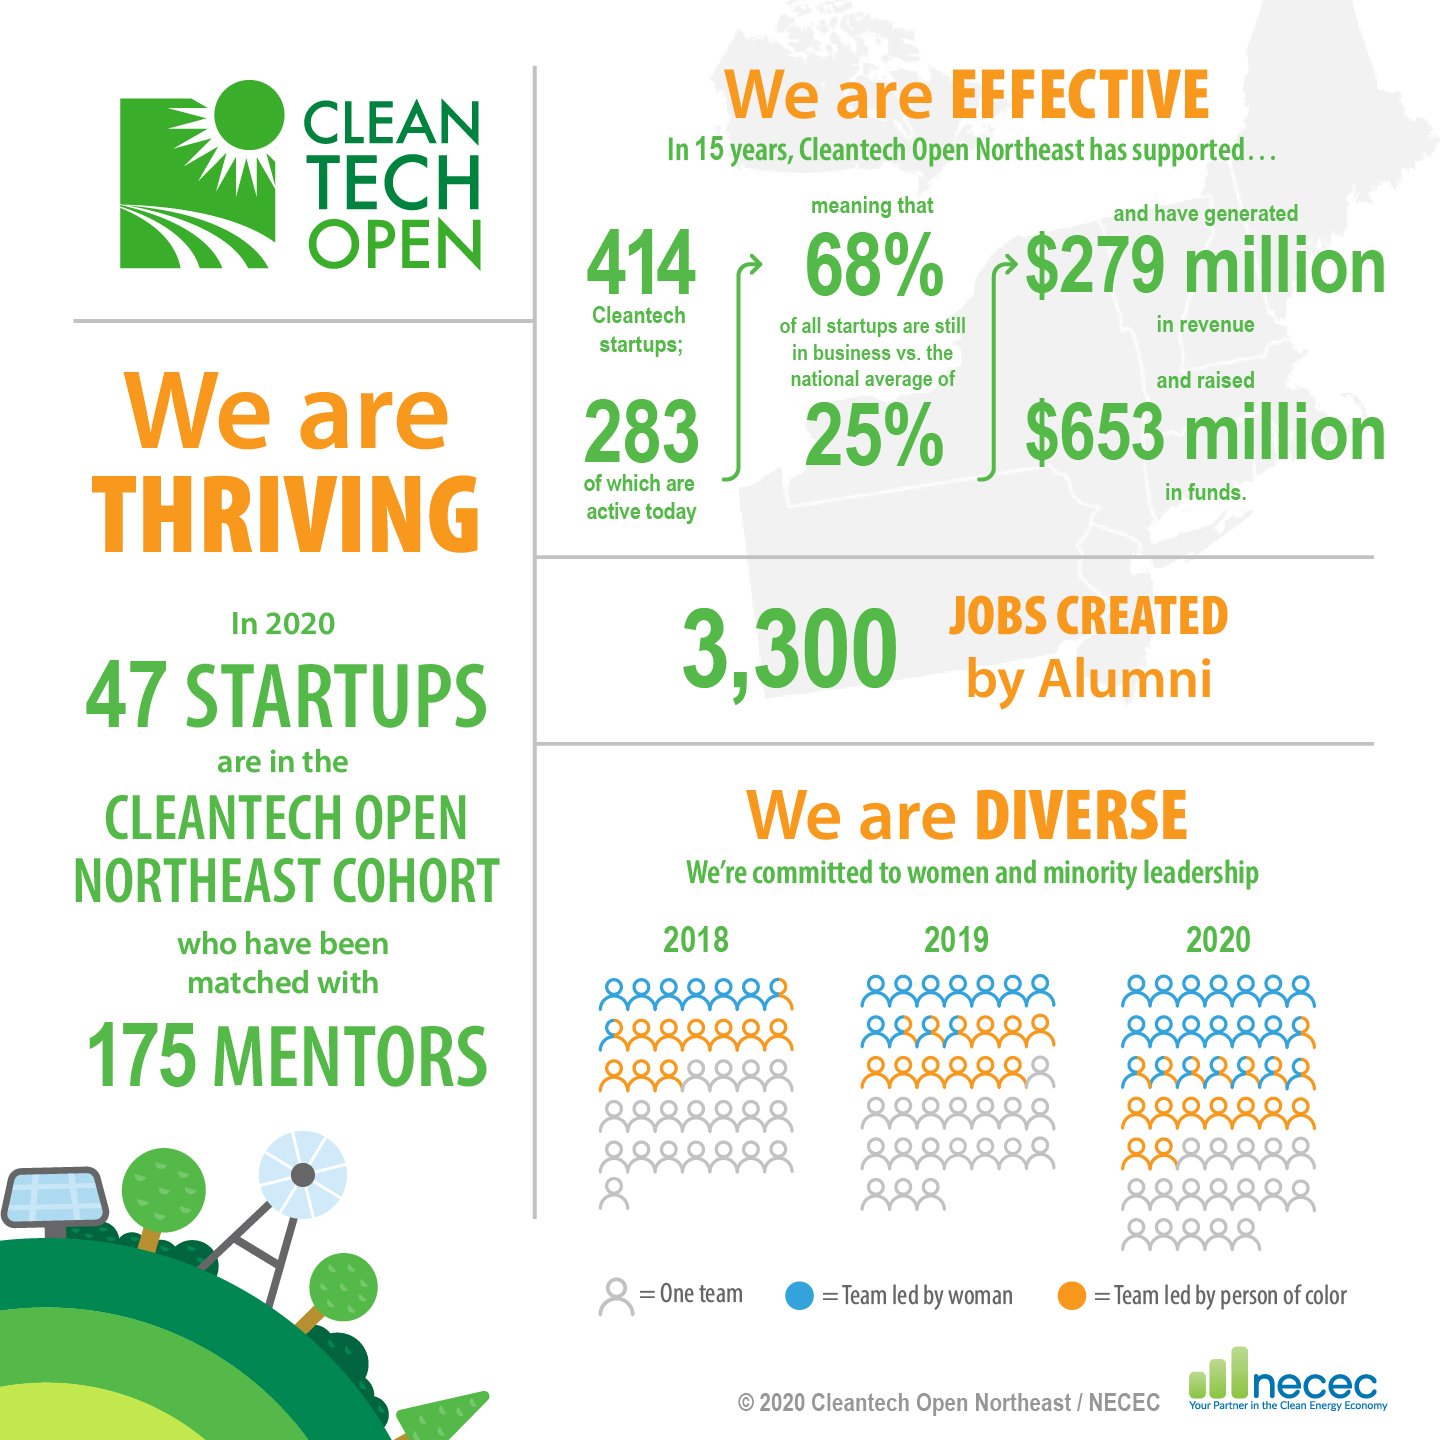 Cleantech Open Northeast is effective, thriving and diverse